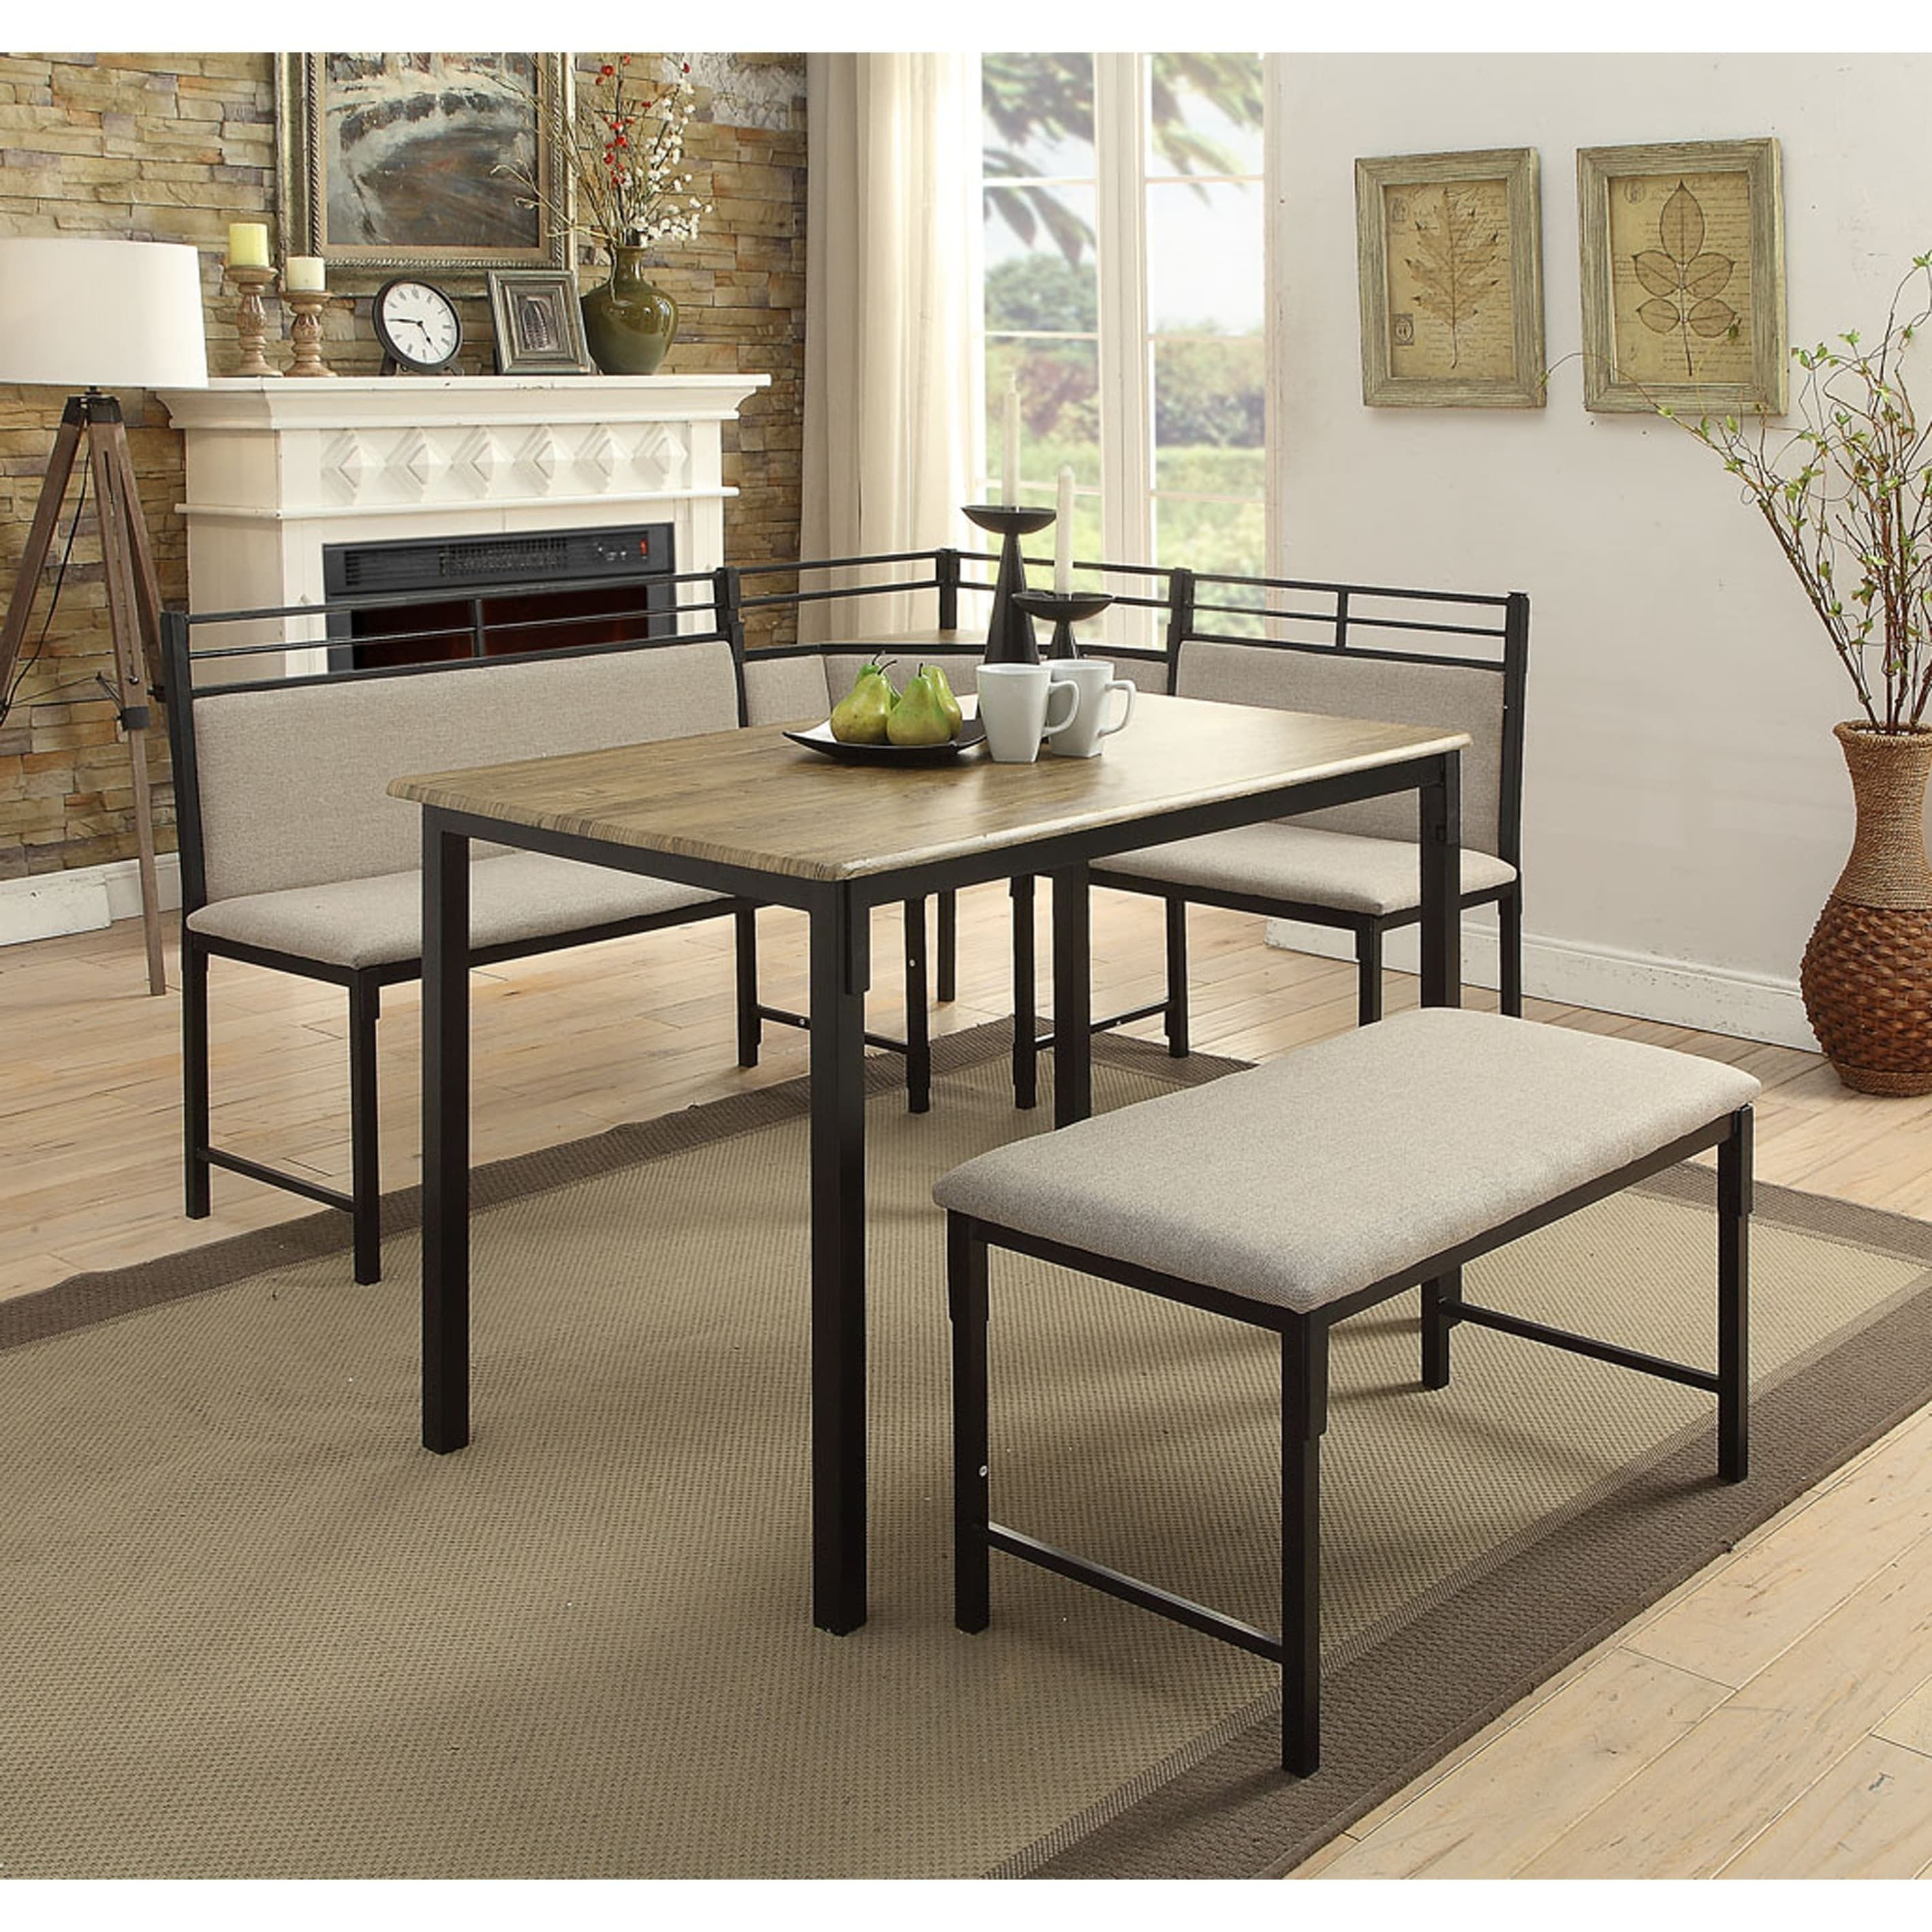 Boltzero Tool Less Corner Nook Dining Set (Table Corner Seat Bench With 2018 3 Piece Breakfast Nook Dinning Set (View 12 of 20)